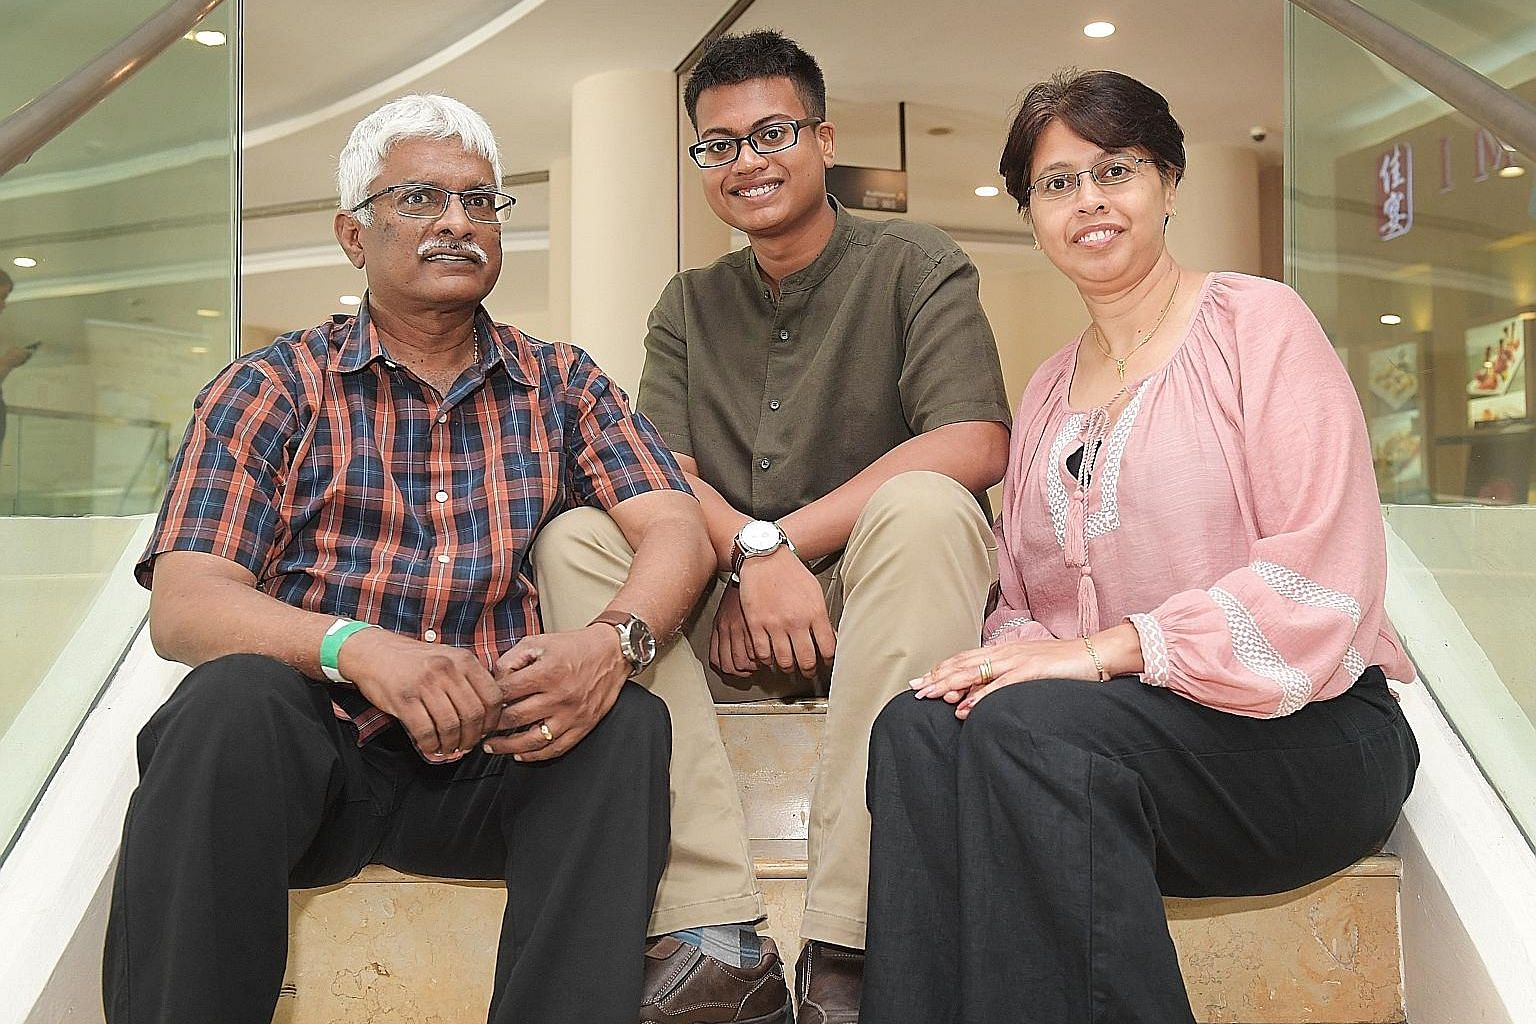 Mr Rajev Valayutham and his wife Lourdes Thomas Audrey, with their biological son Rajev Jarryll Deneshan. The family has cared for a total of 10 foster children in 15 years.